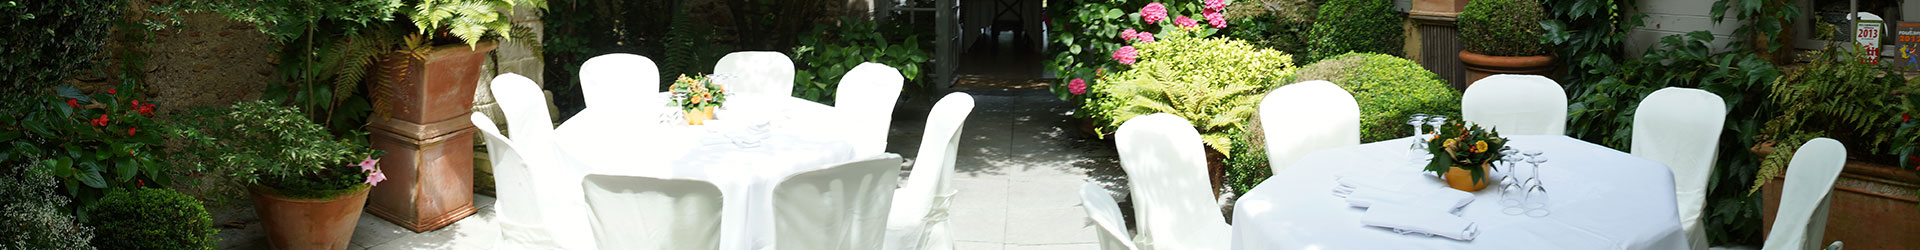 mariage-reception-privee-tables-dressees